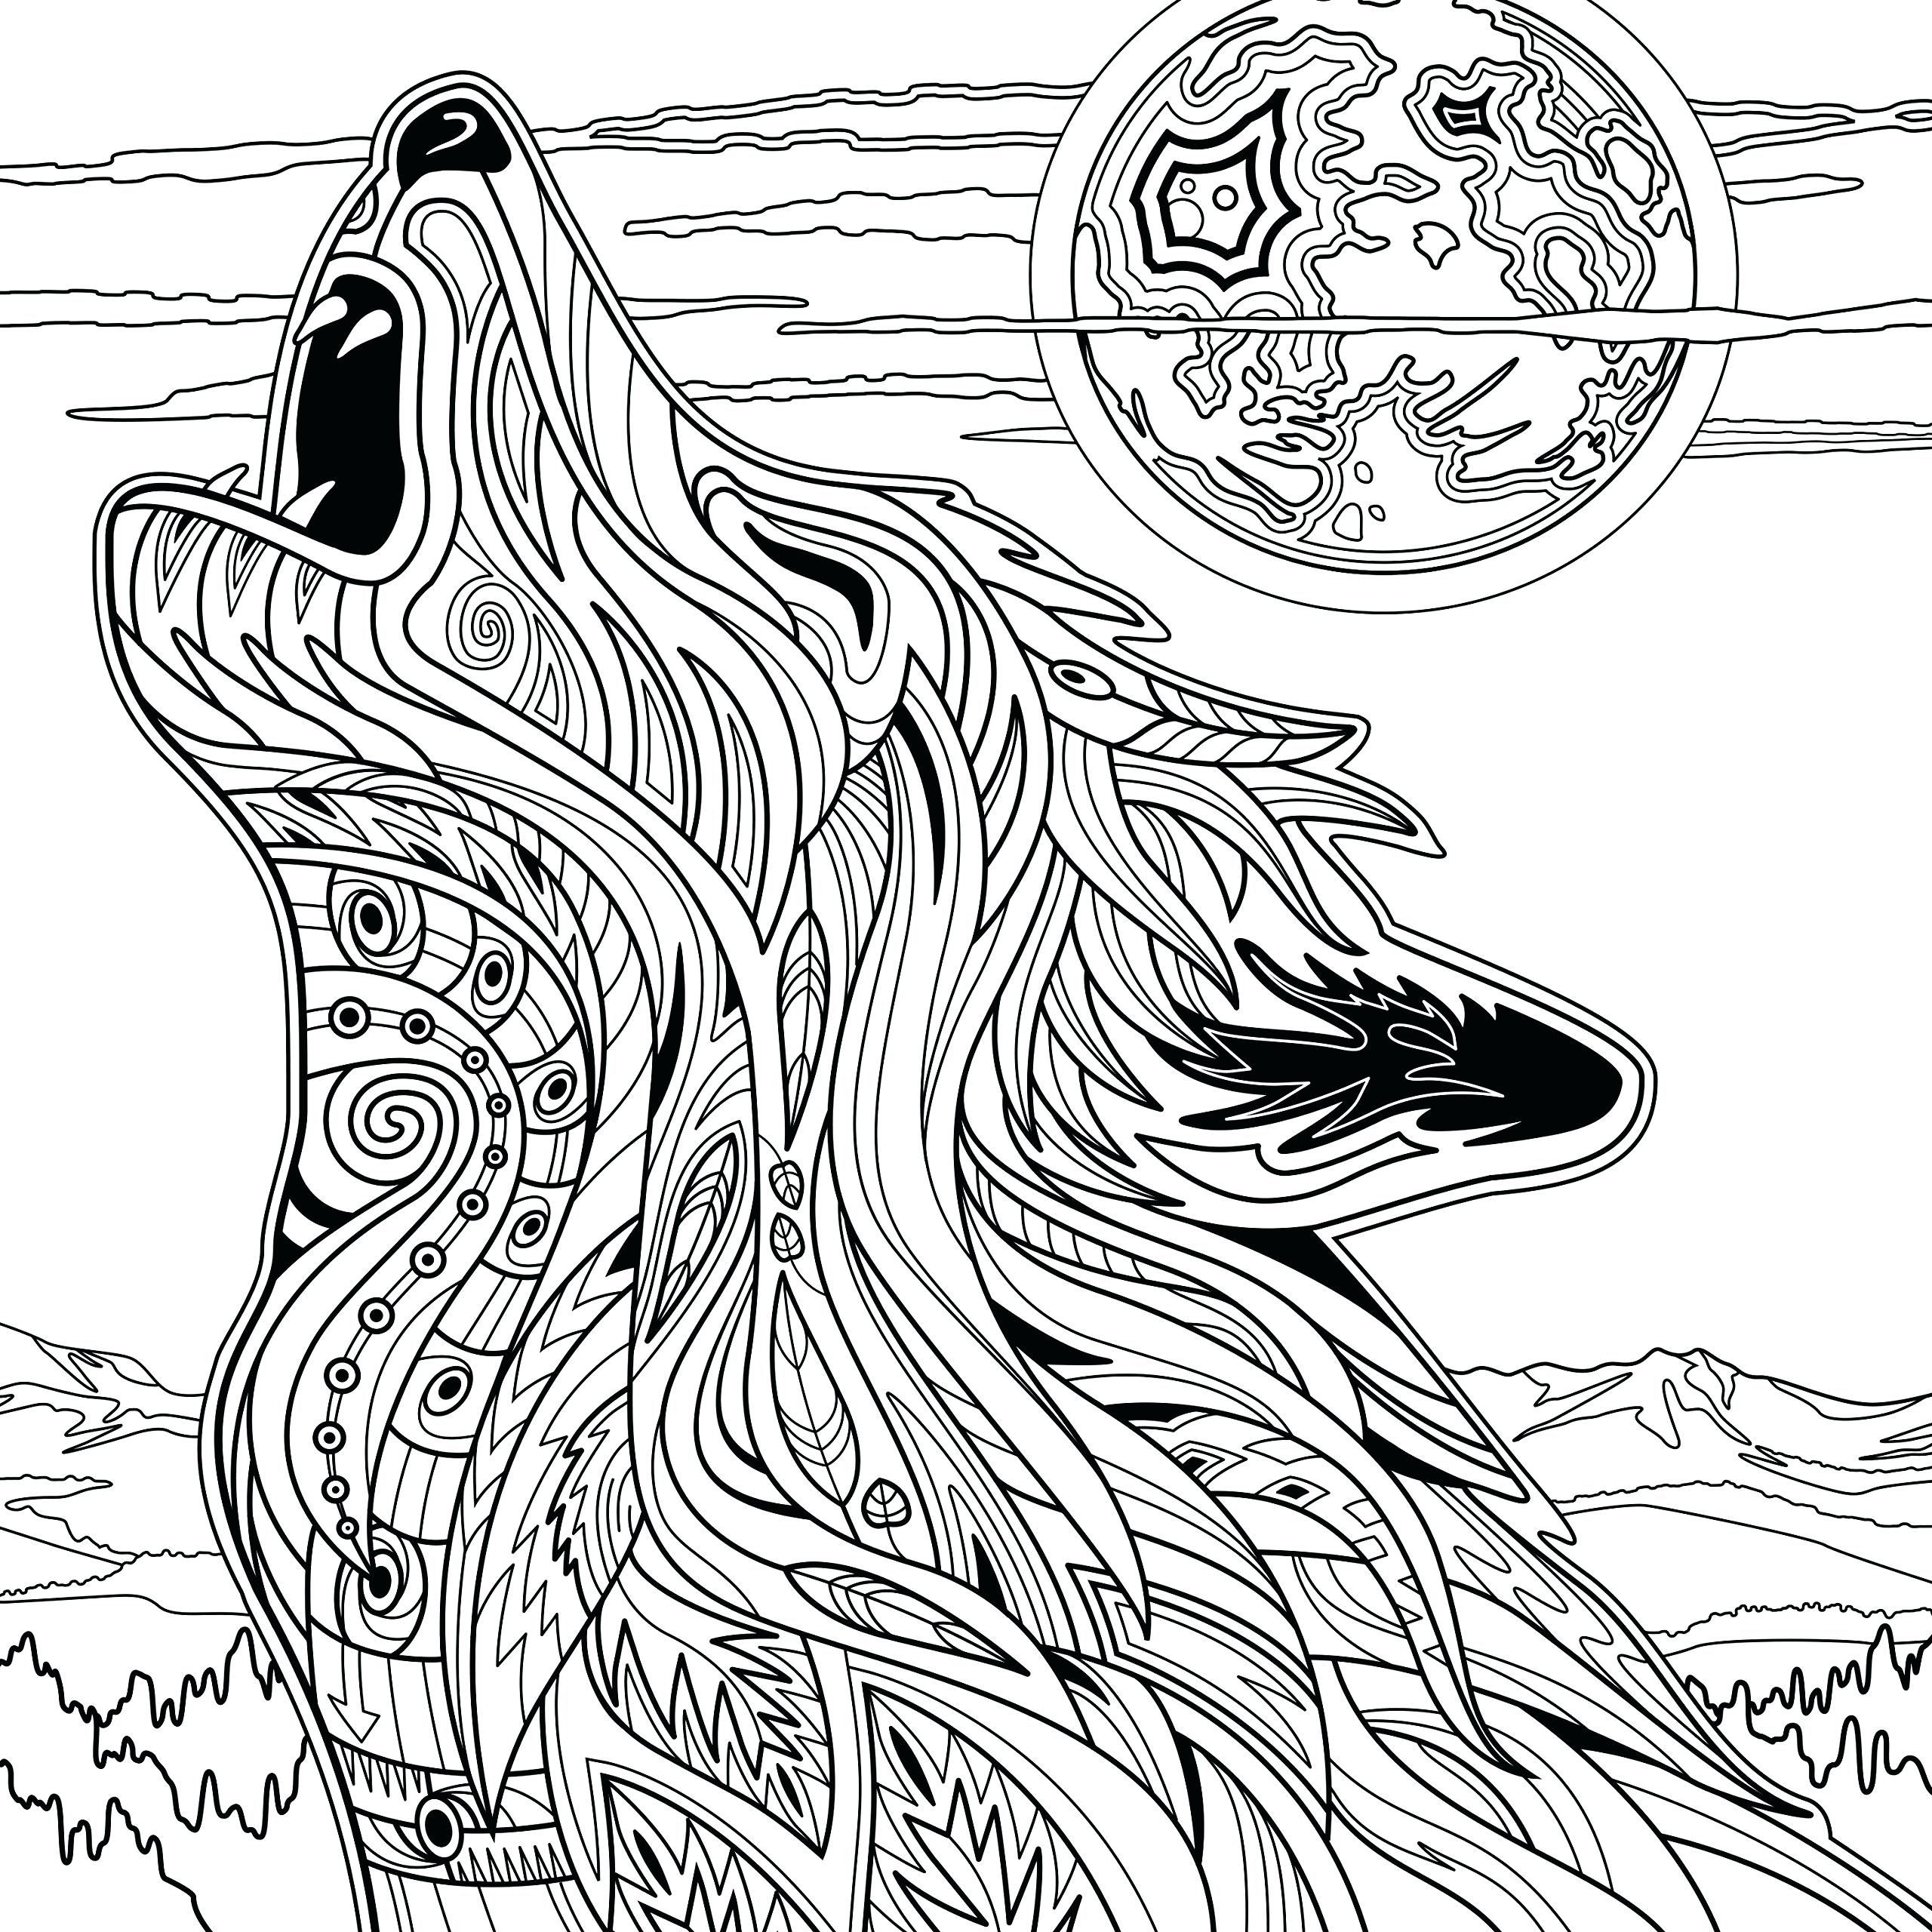 2560x2560 Coloring Pages Paint Online New Grown Up Adult Books In Pretty